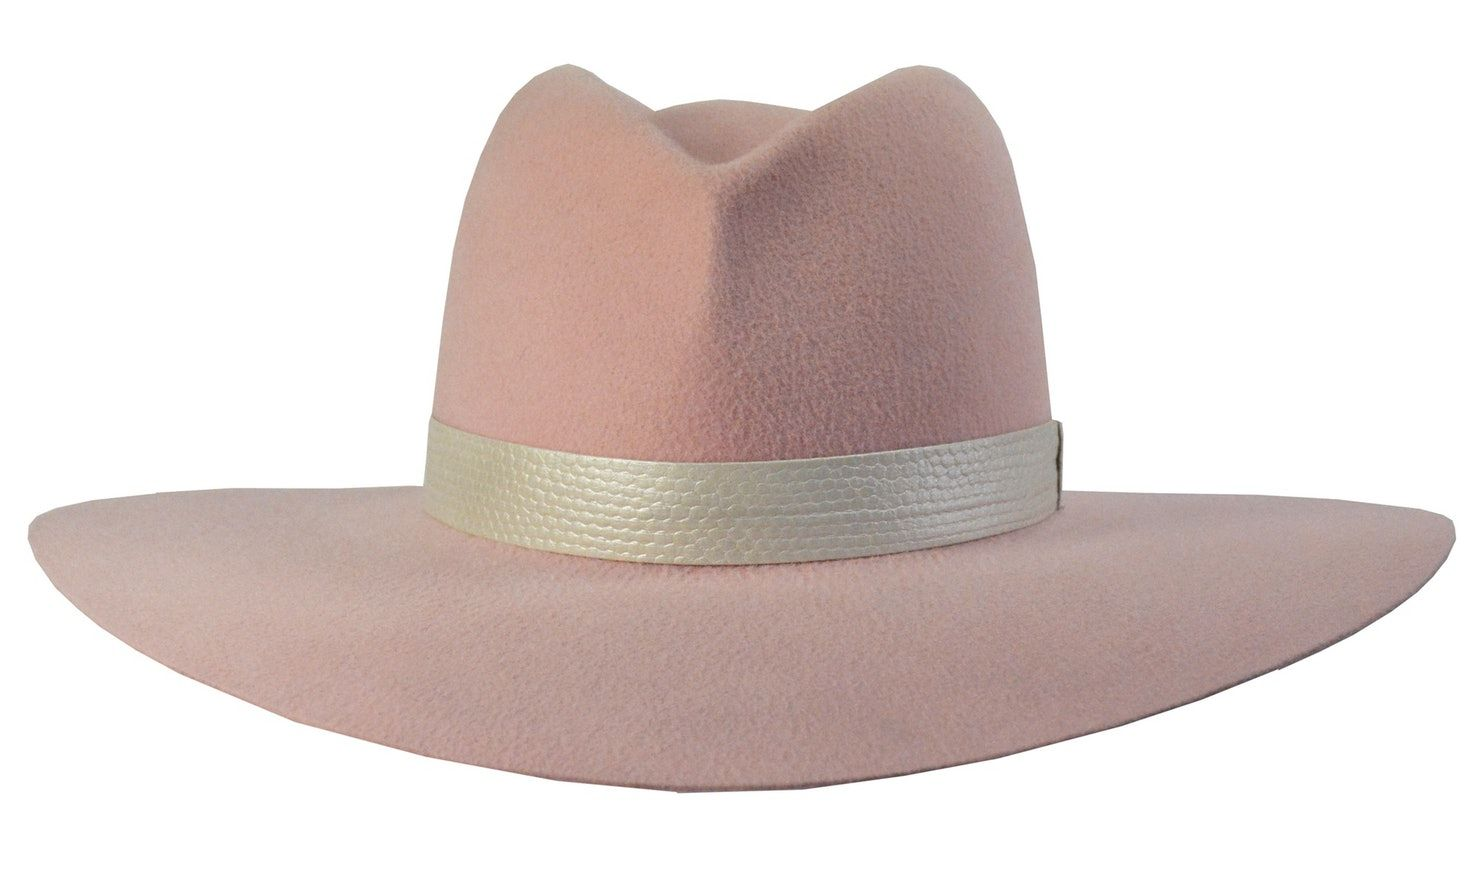 Where To Buy Lady Gaga S Pink Joanne Hat If You Want Want To Channel Her Chic Cowgirl Vibes Women Hats Fashion Pink Hat Lady Gaga